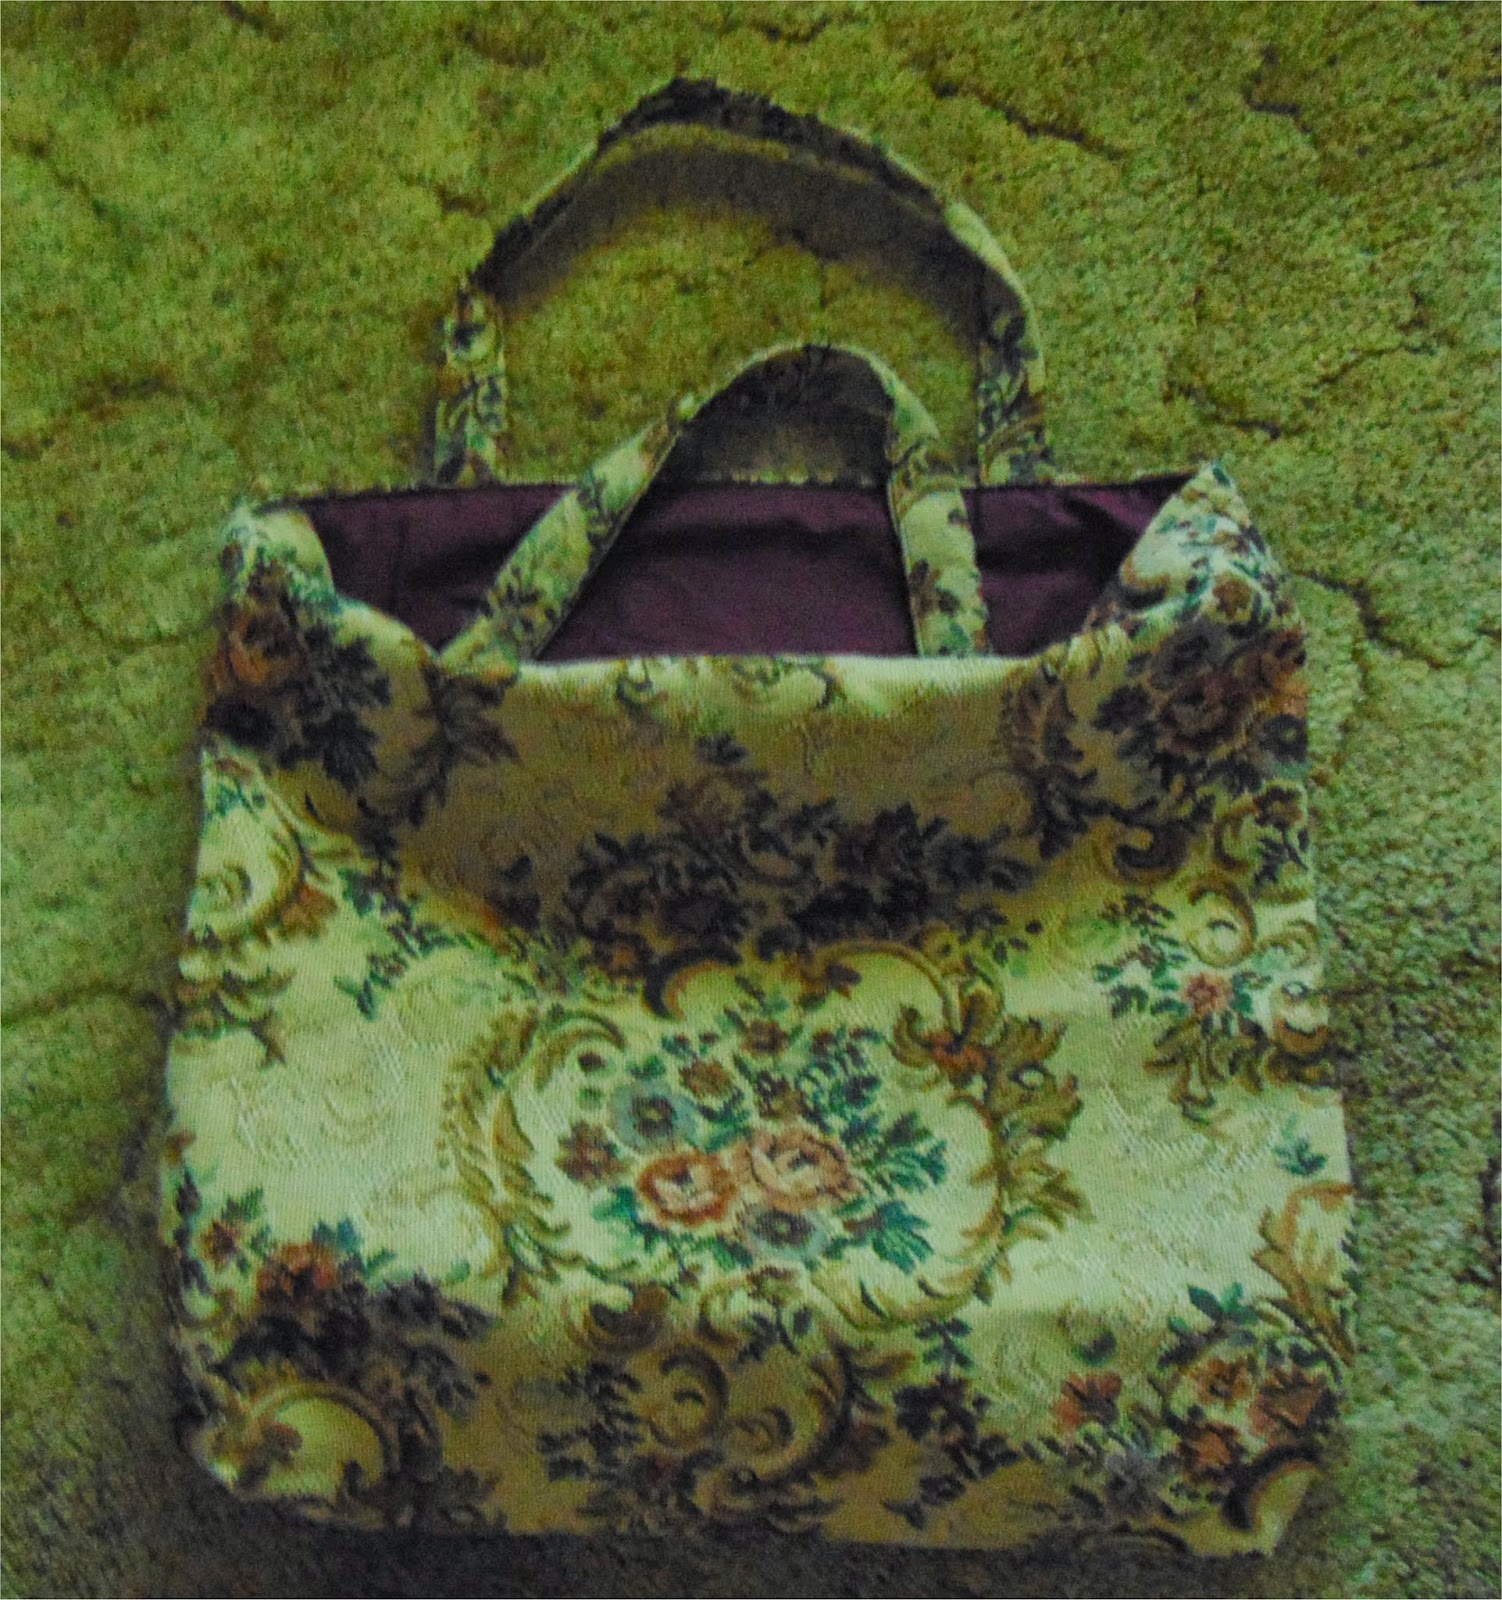 Tote bag made of upholstery fabric with fall flowers